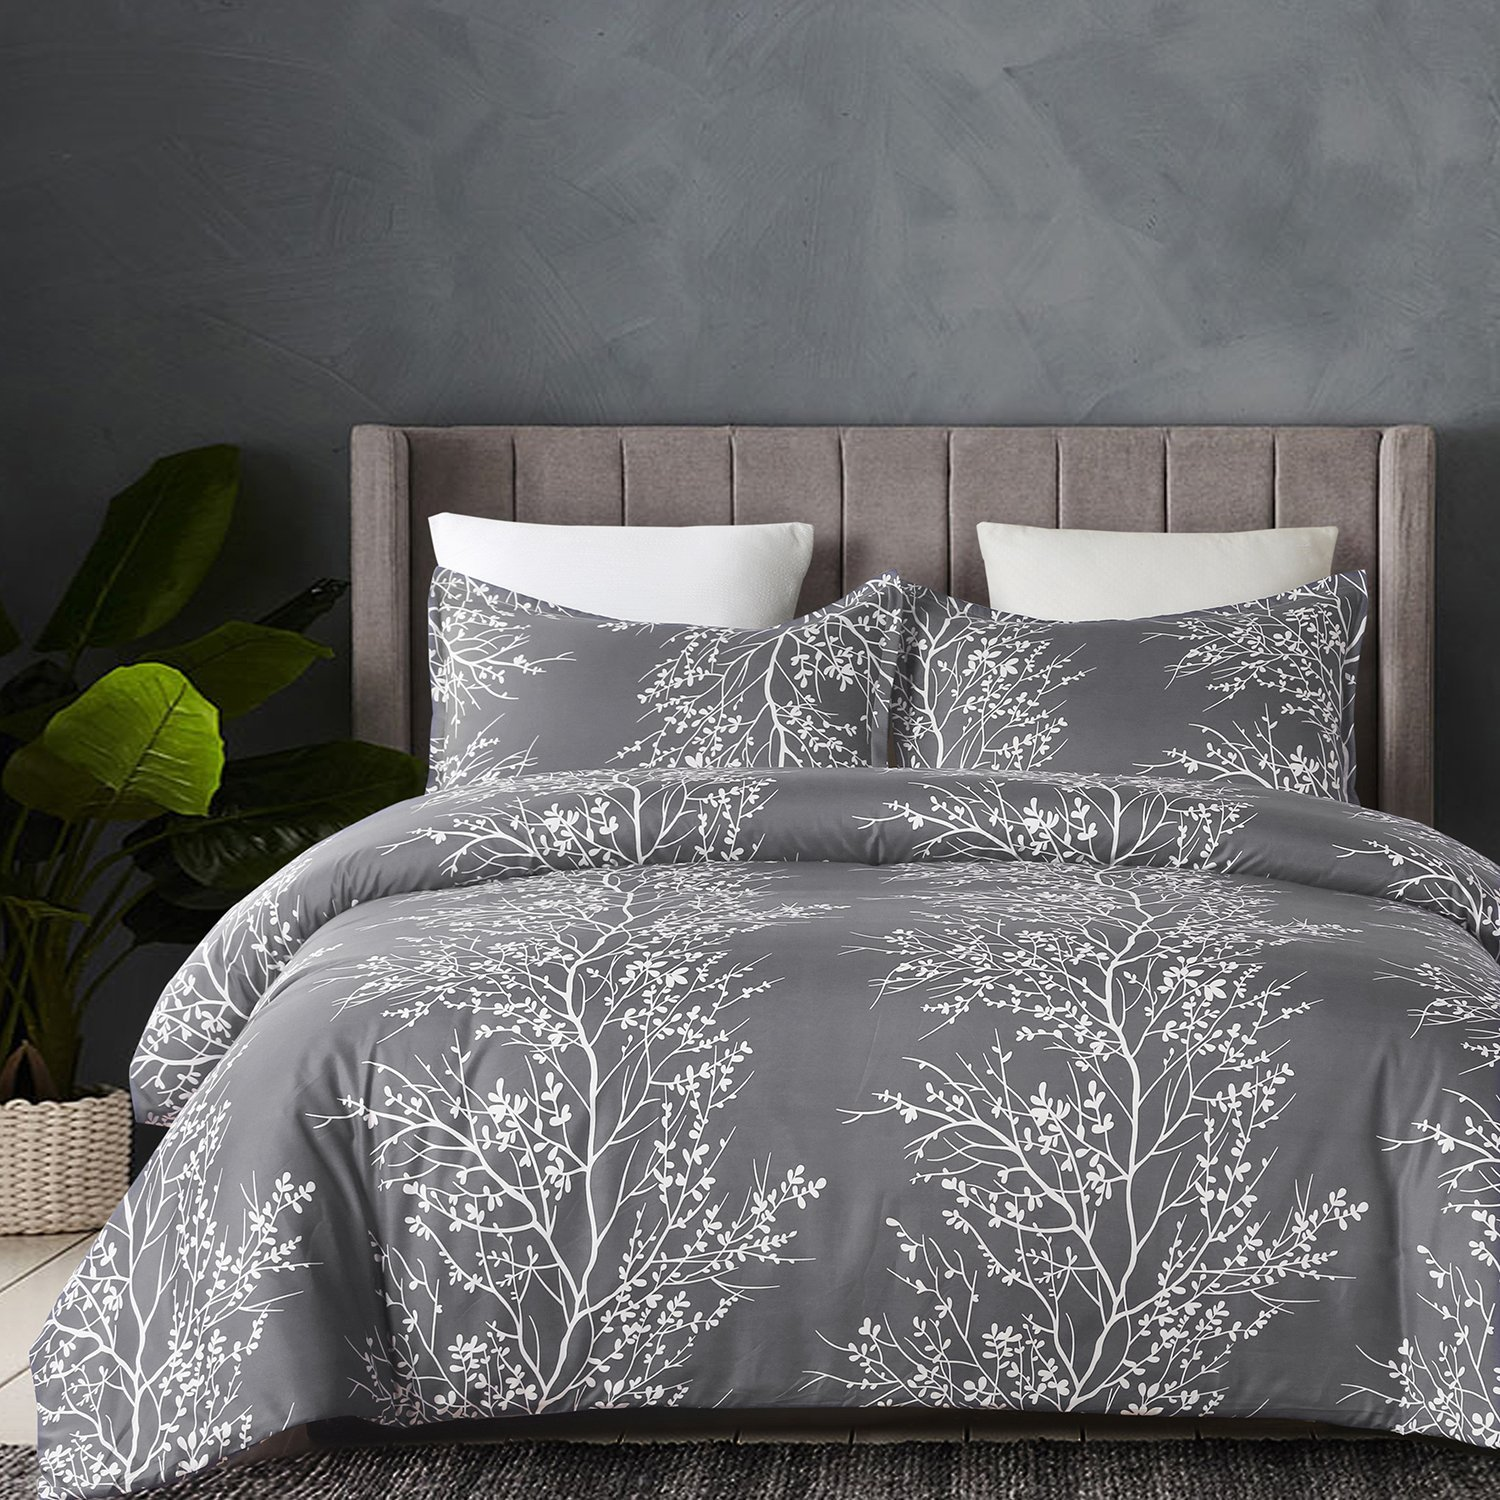 Bedding Ideas For Every Bedroom In Your Home